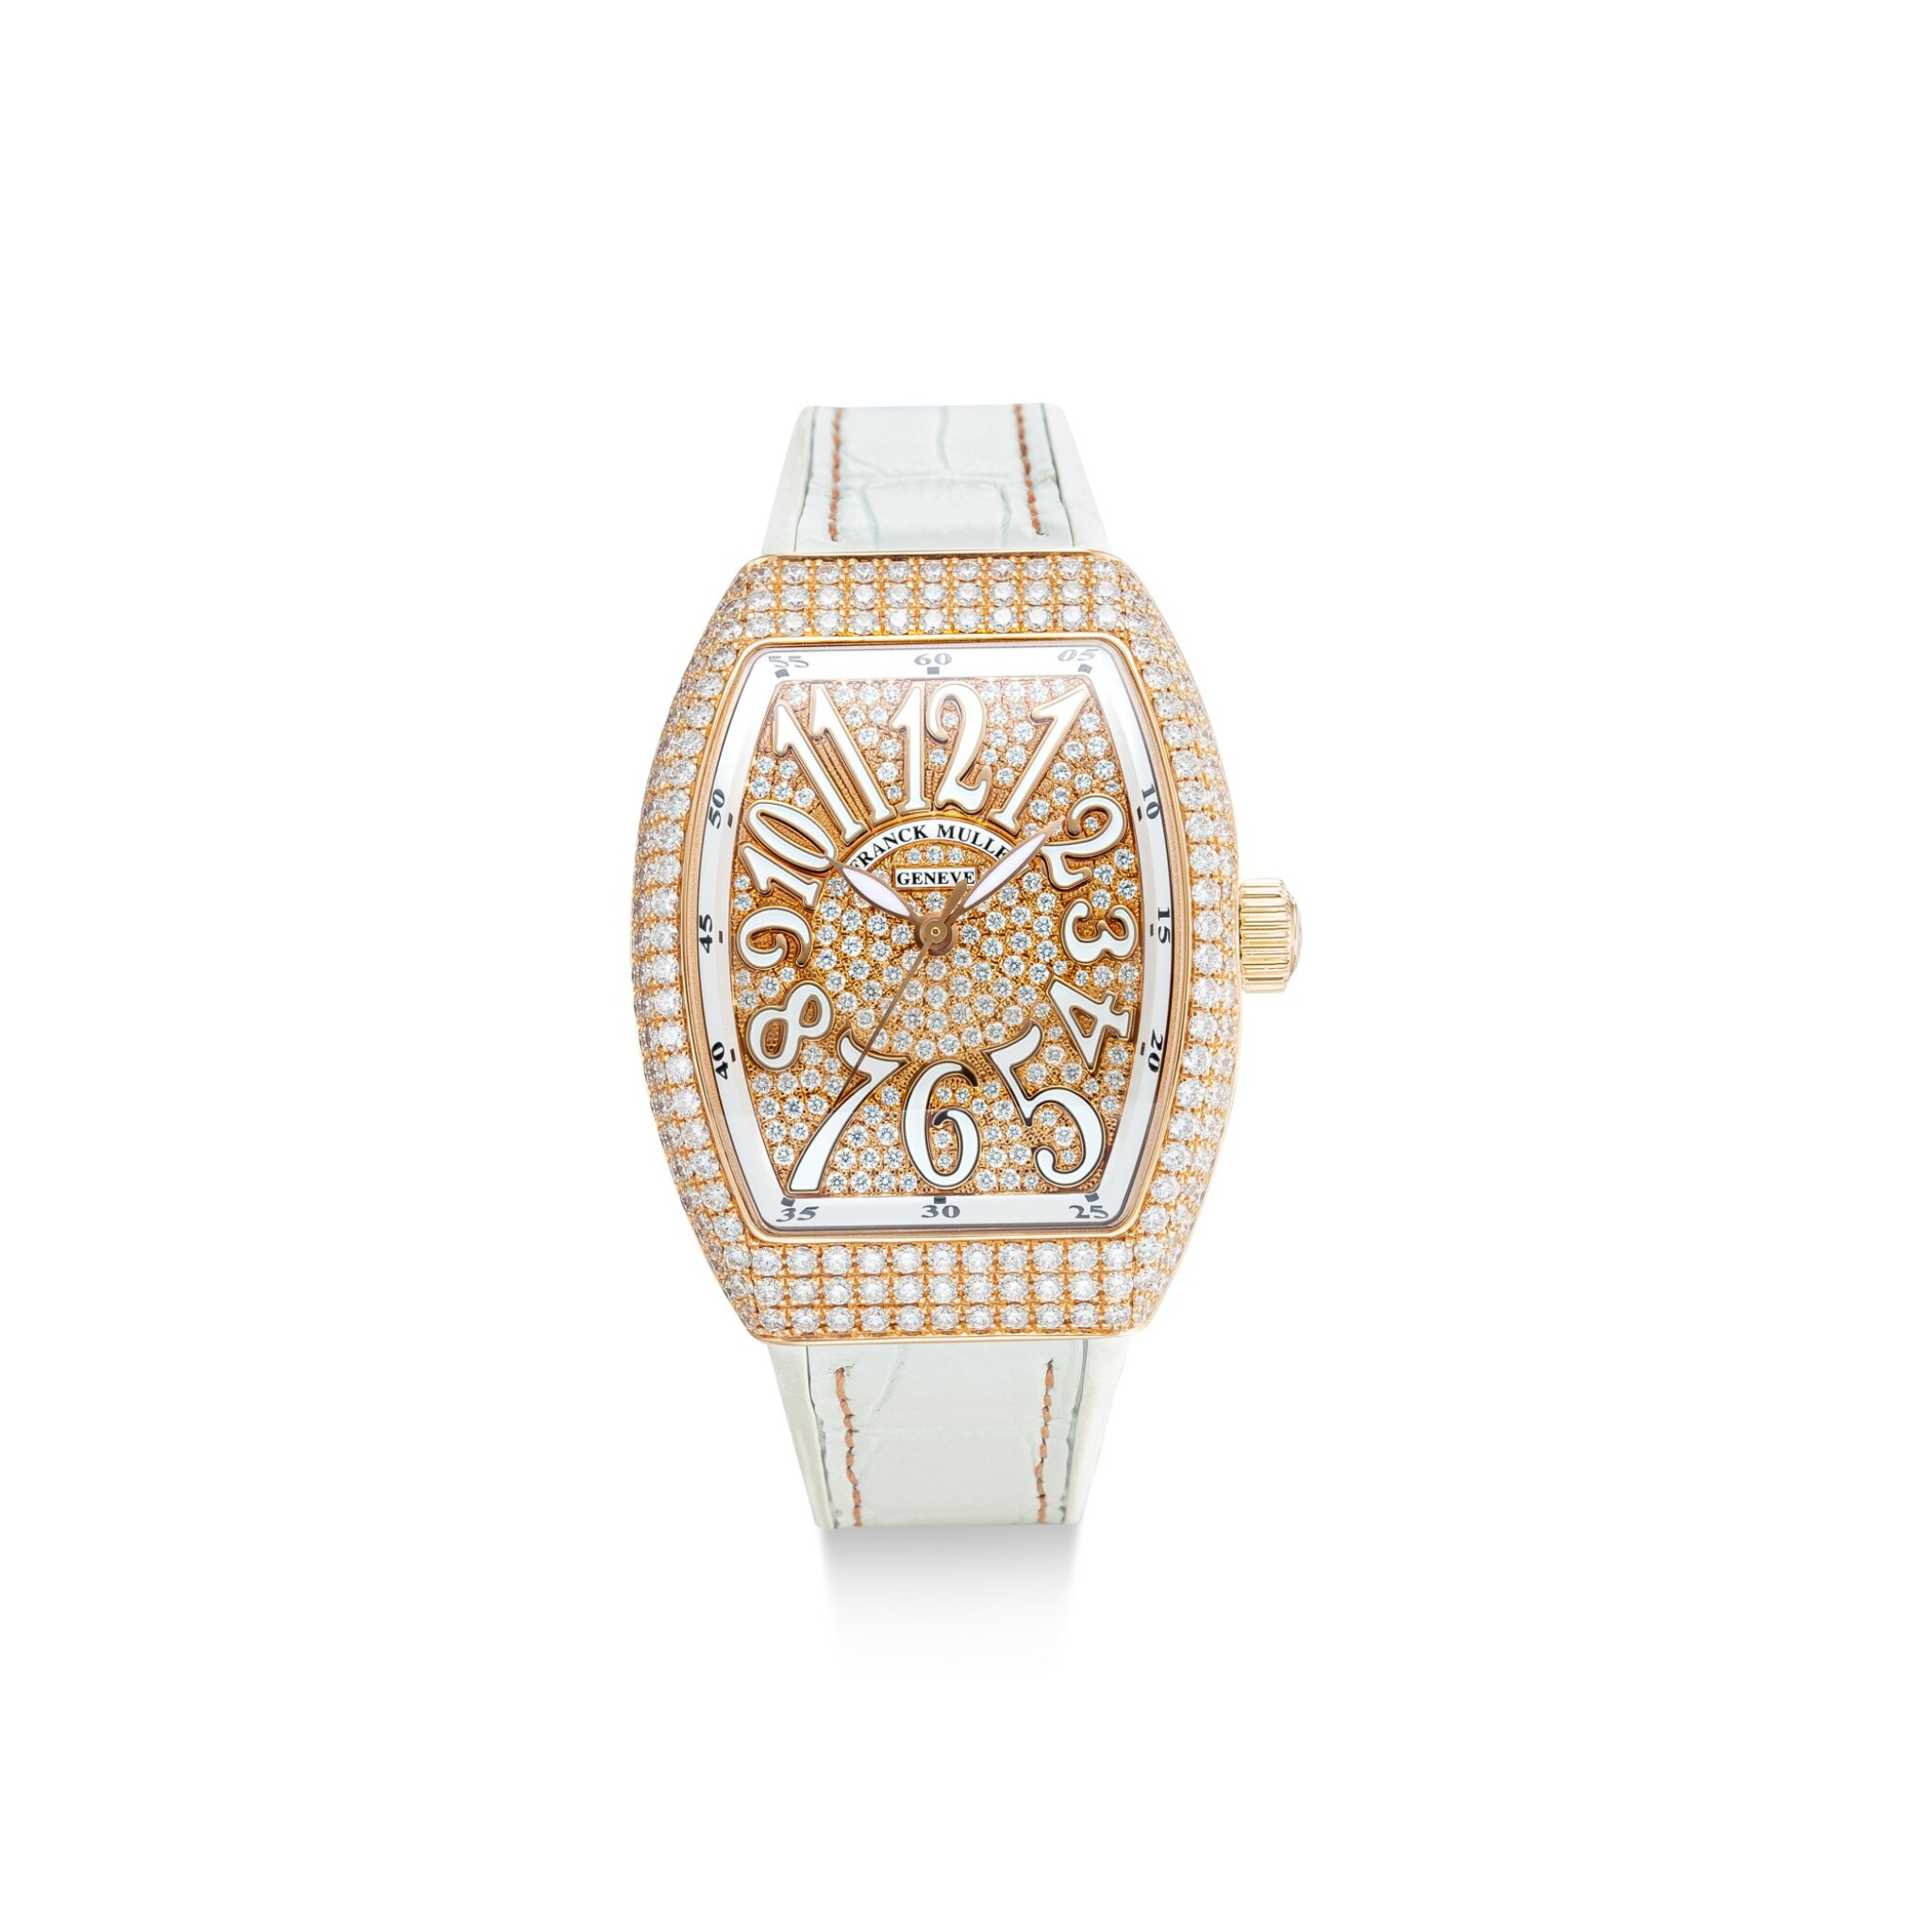 View full screen - View 1 of Lot 605. FRANCK MULLER   VANGUARD, REFERENCE V 32 SC AT FO D CD 5N BC   A PINK GOLD AND DIAMOND-SET WRISTWATCH, CIRCA 2018 .